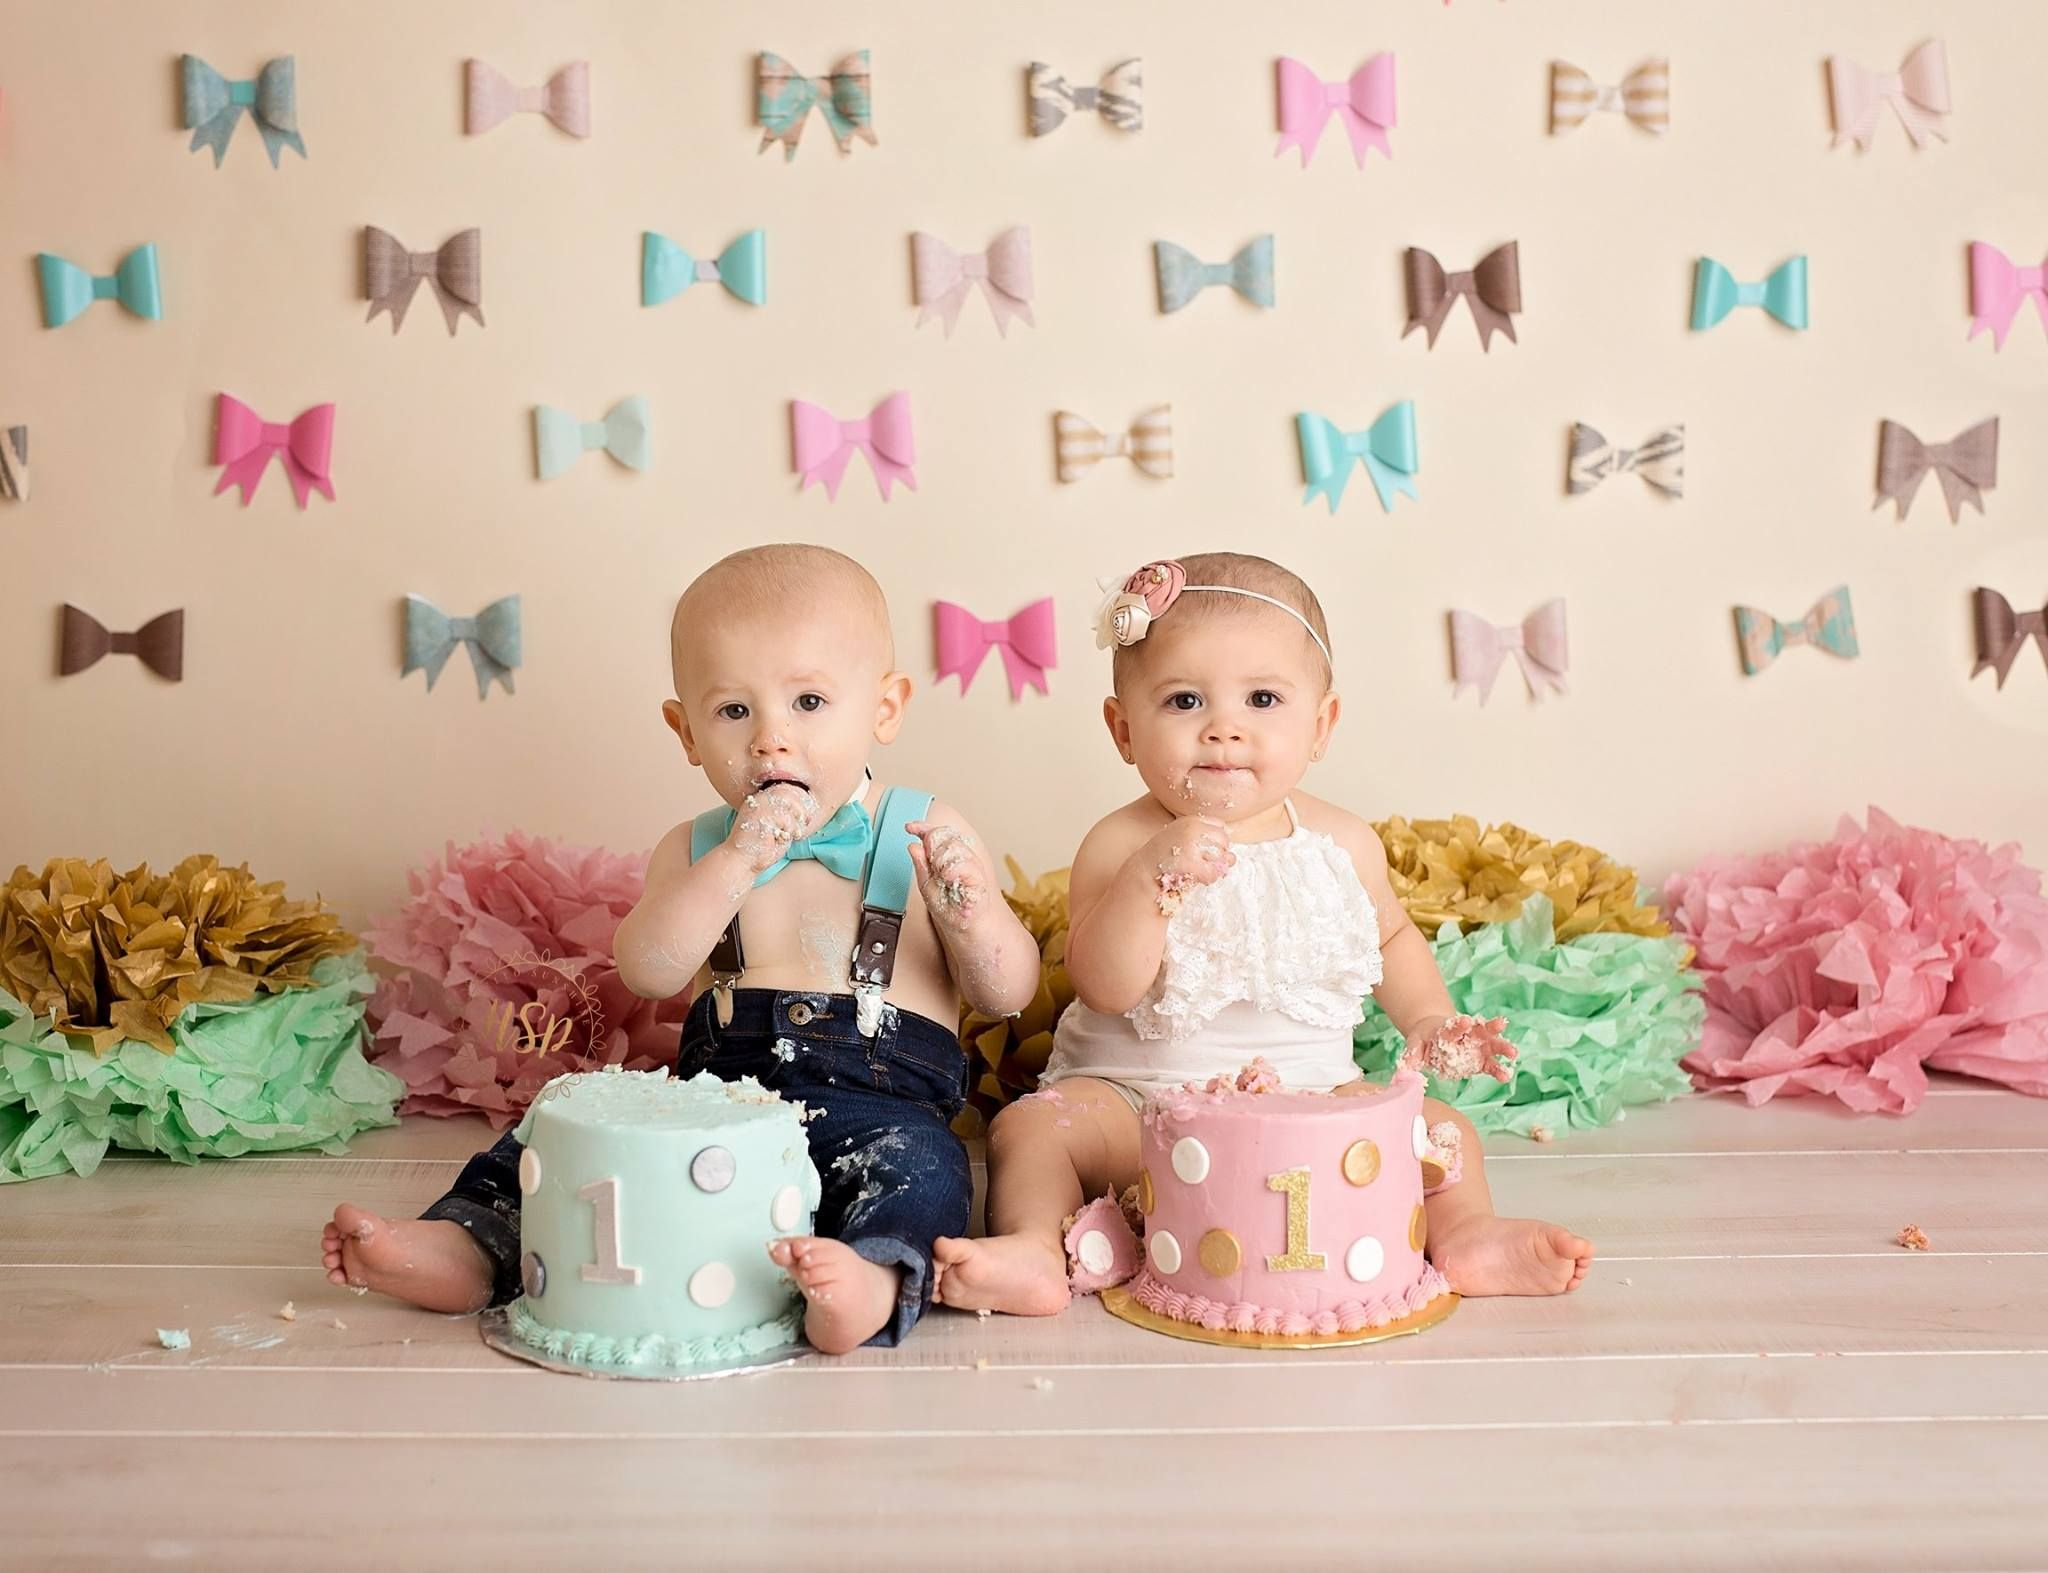 Boy and Girl twins cake smash. Hair bows and bow ties ...